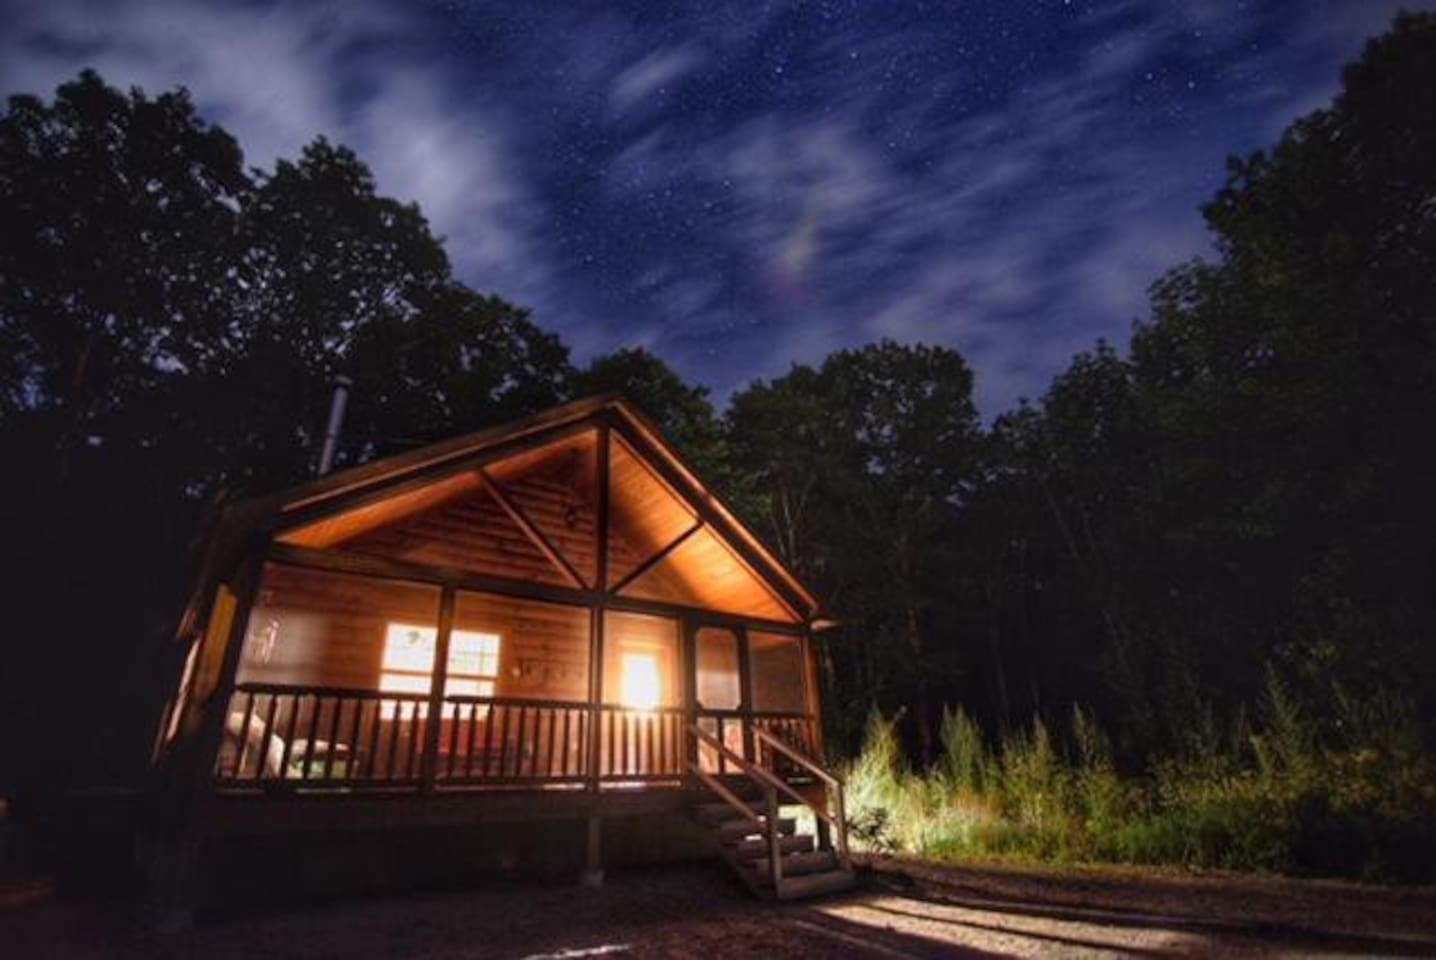 The night sky at the cabin, taken by a wonderful photographer and guest in August 2018.